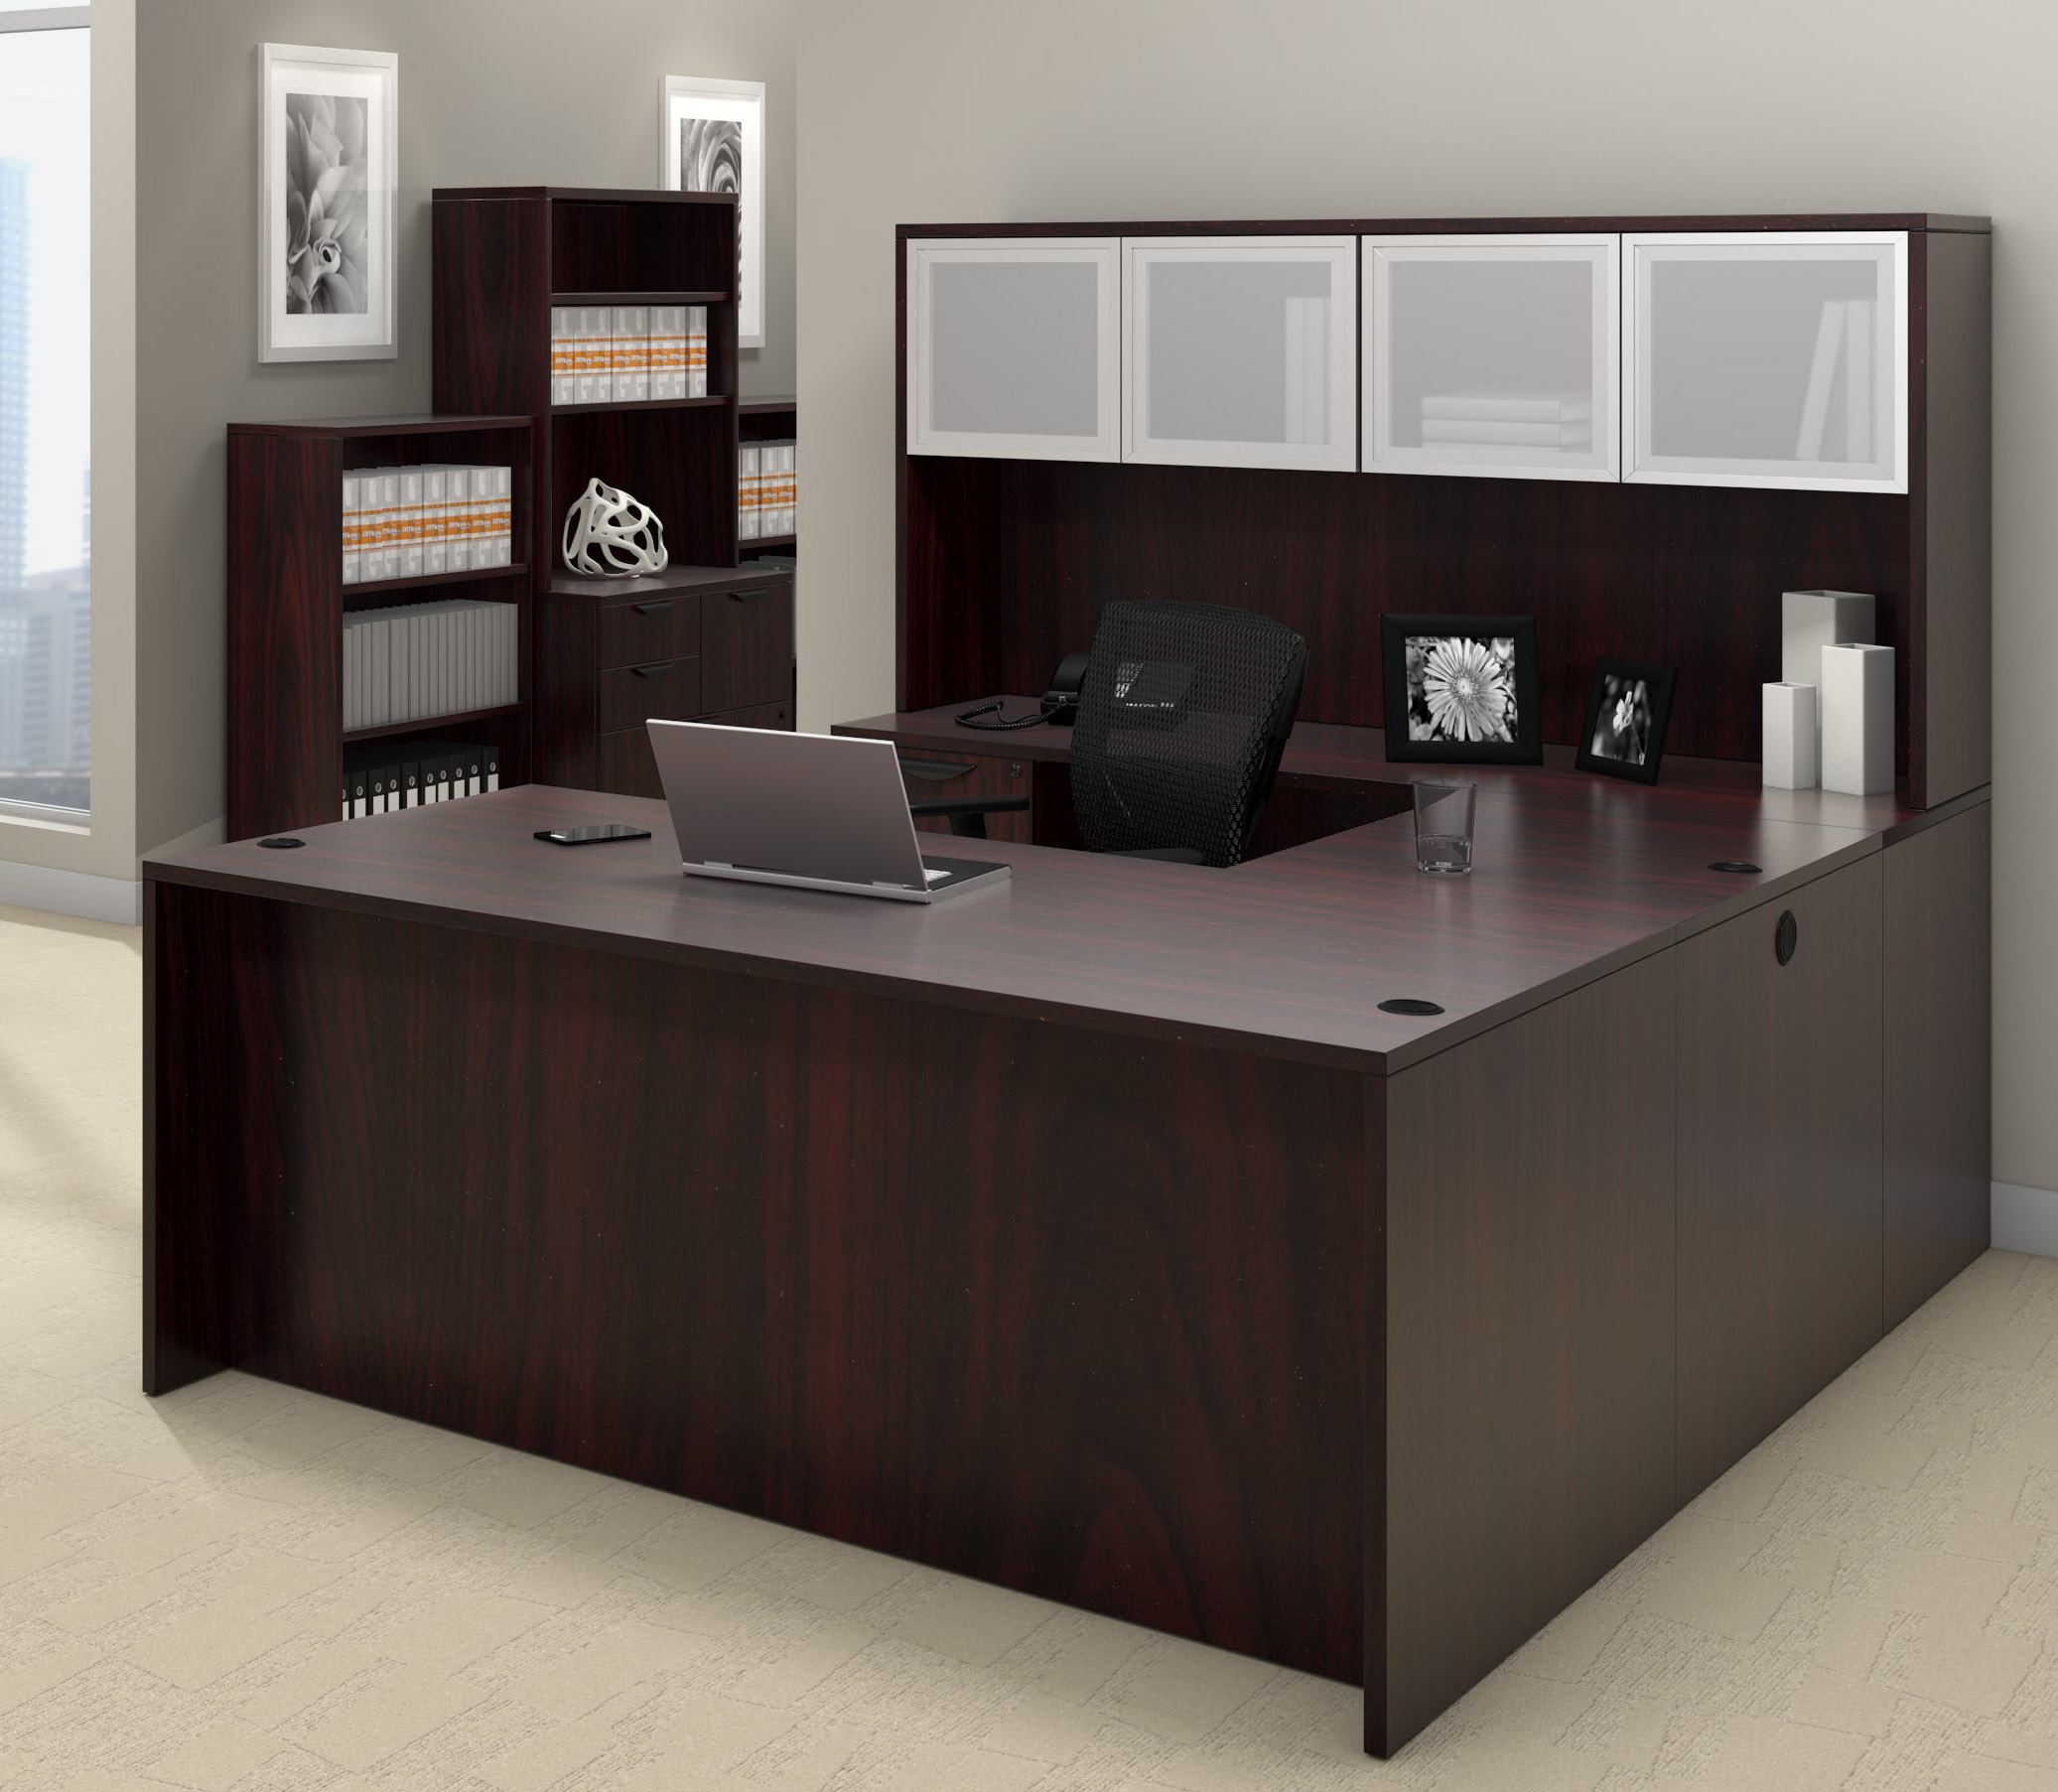 offices to go superior laminate u-shaped workstation with mahogany finish